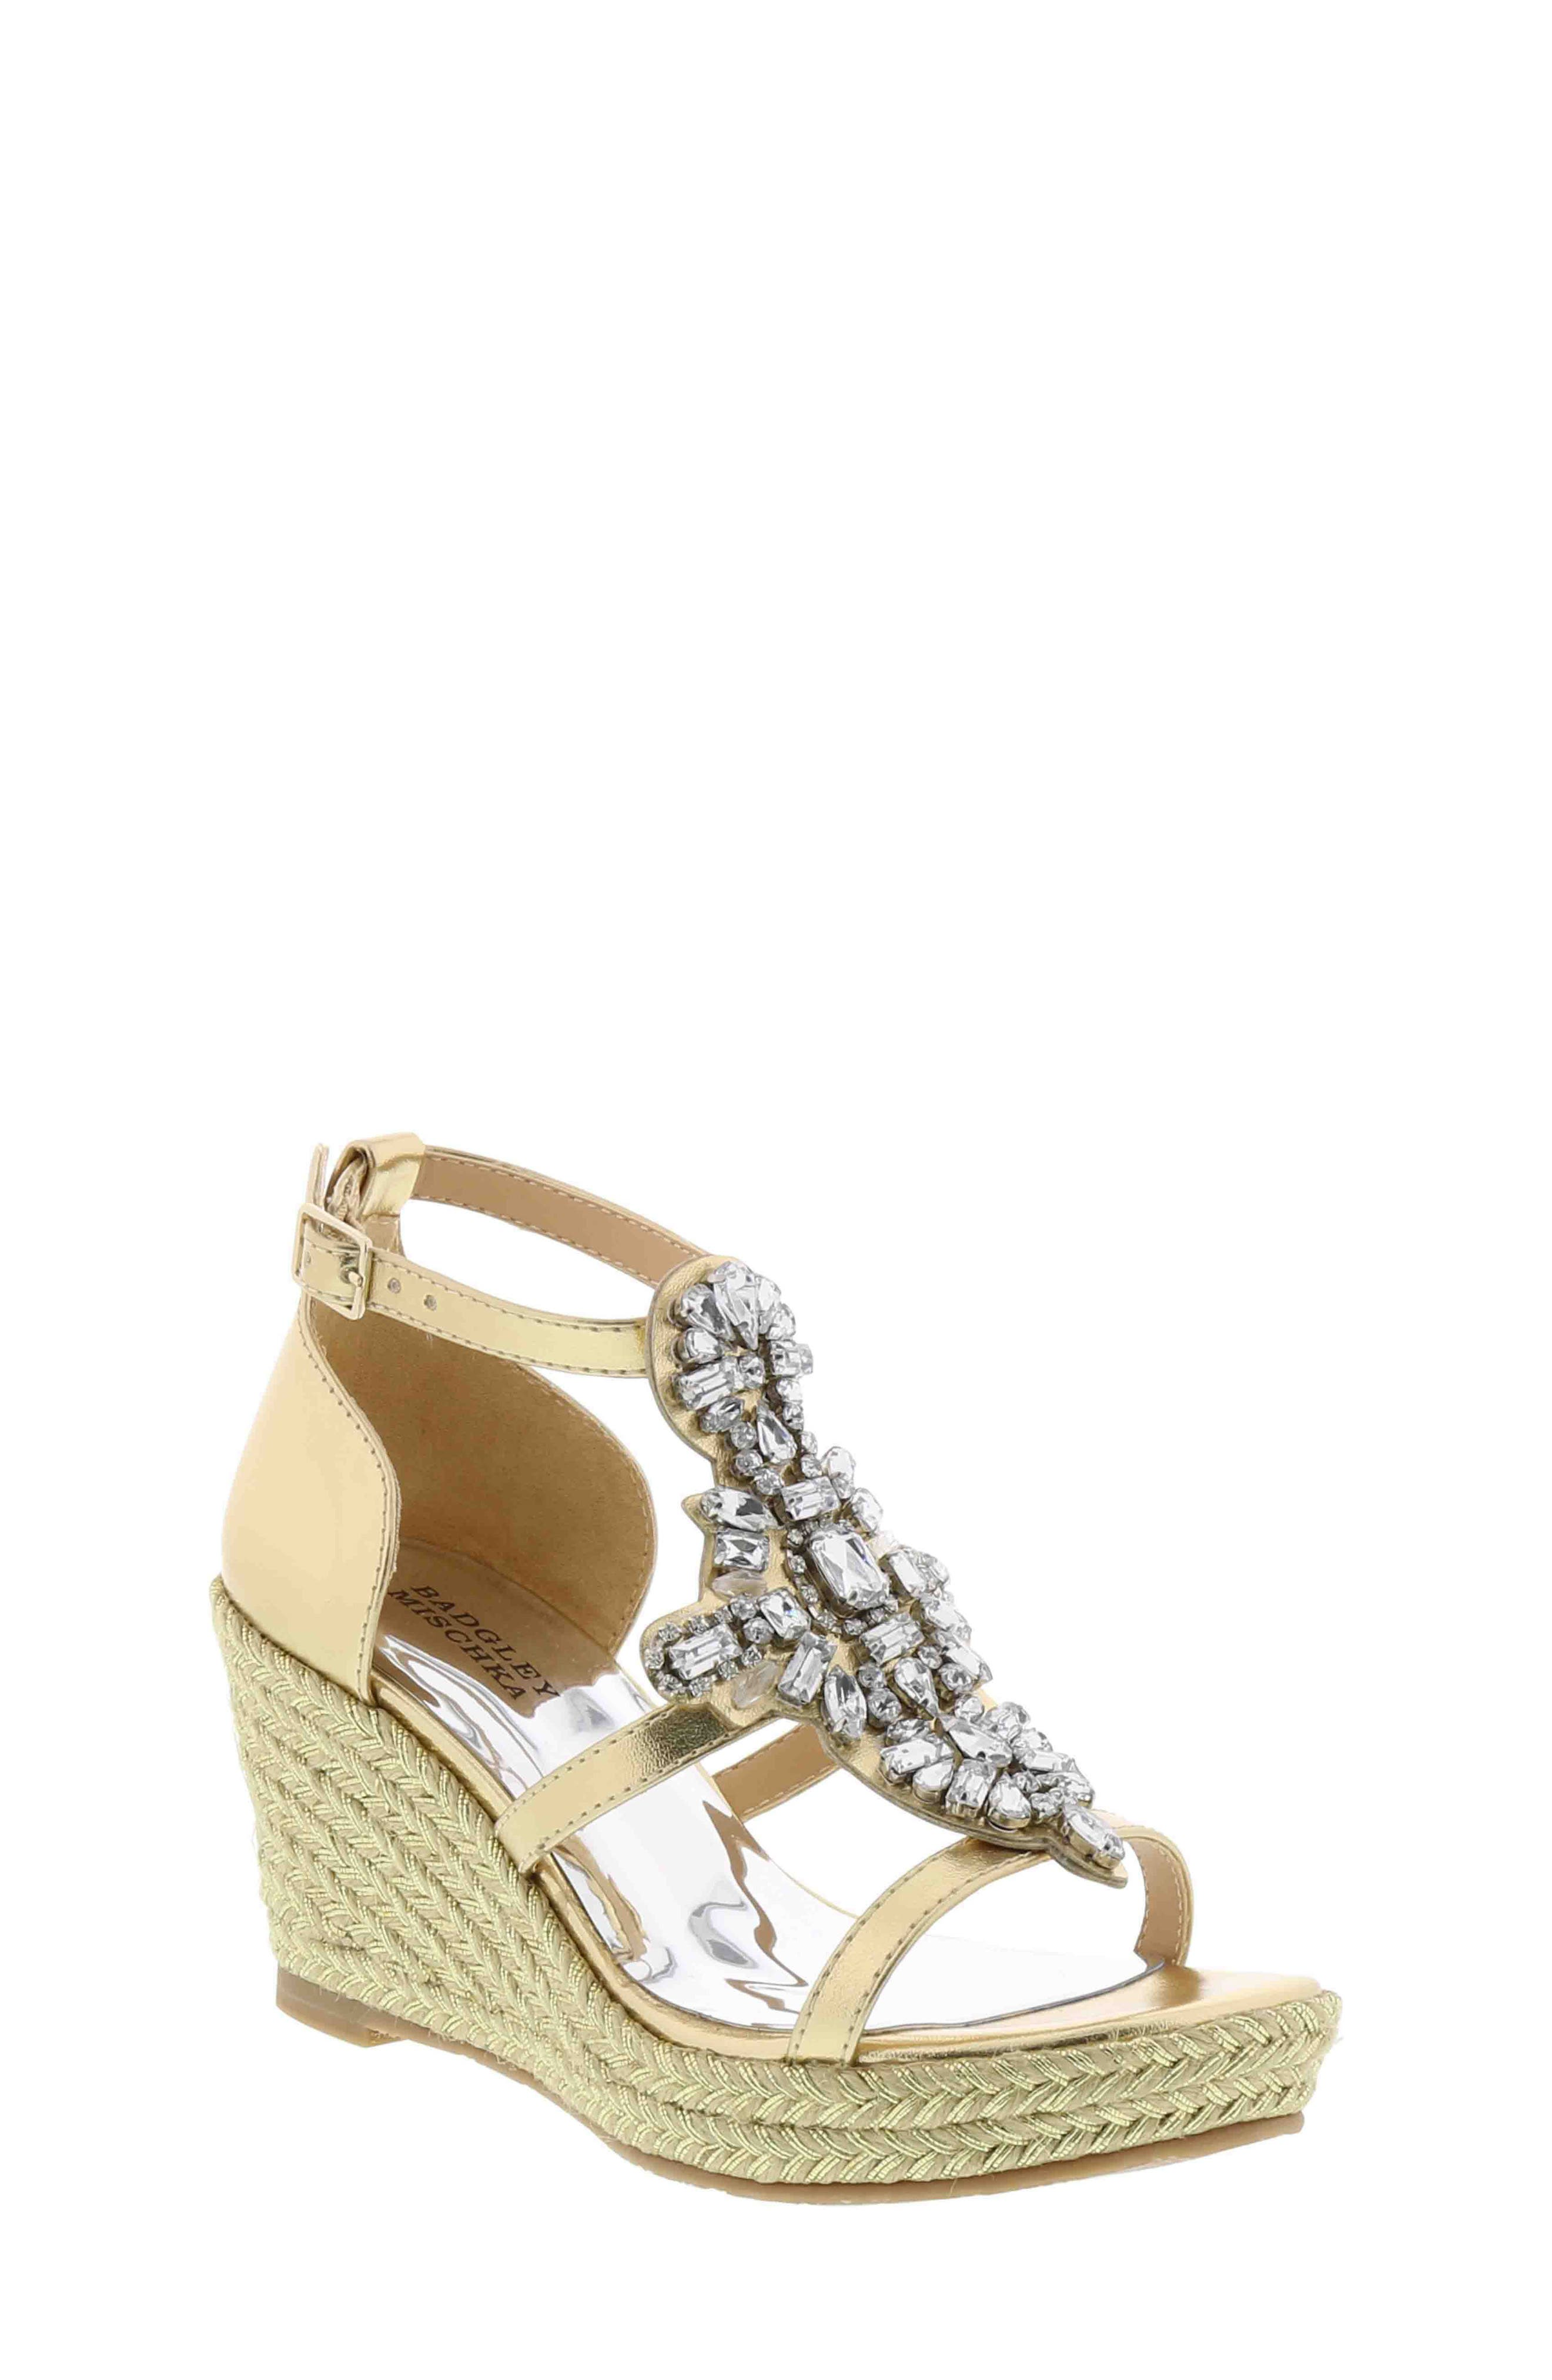 Badgley Mischka Sophia Barre Wedge Sandal (Toddler, Little Kid & Big Kid)